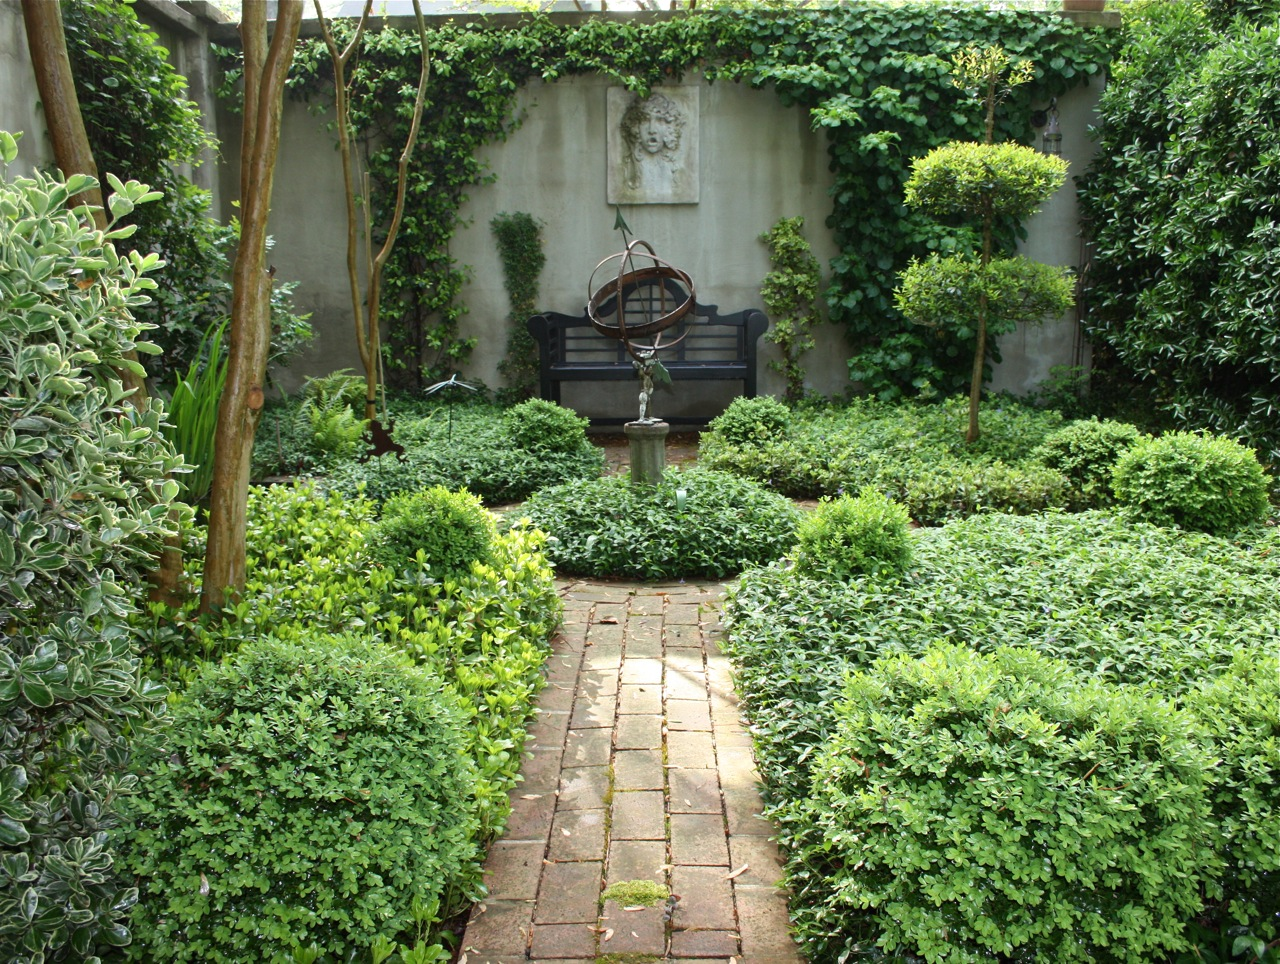 A curious gardener southern courtyard gardens for Courtyard garden ideas